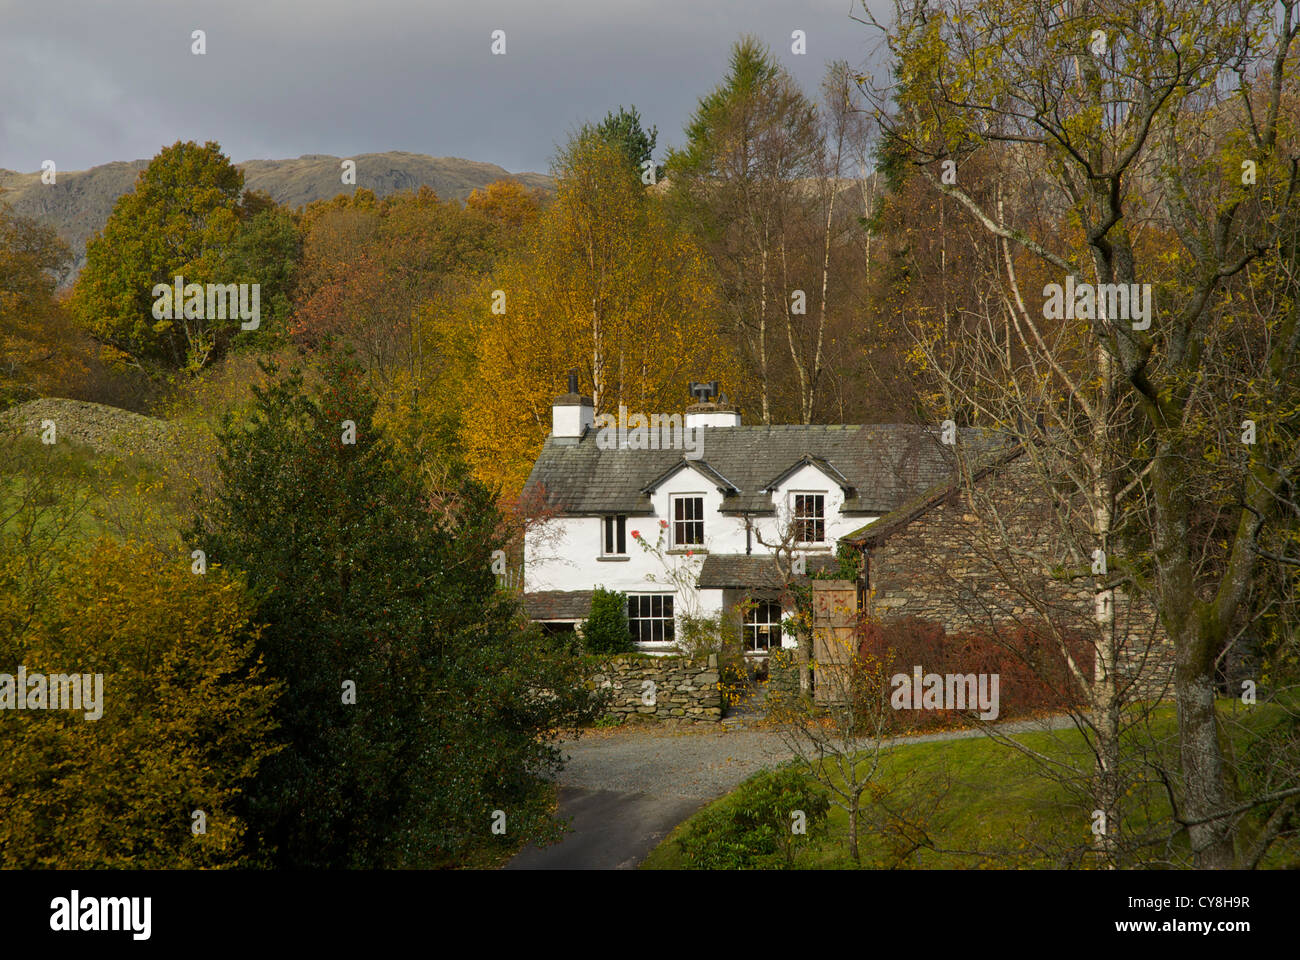 House near Grasmere, Lake District National Park, Cumbria England UK - Stock Image